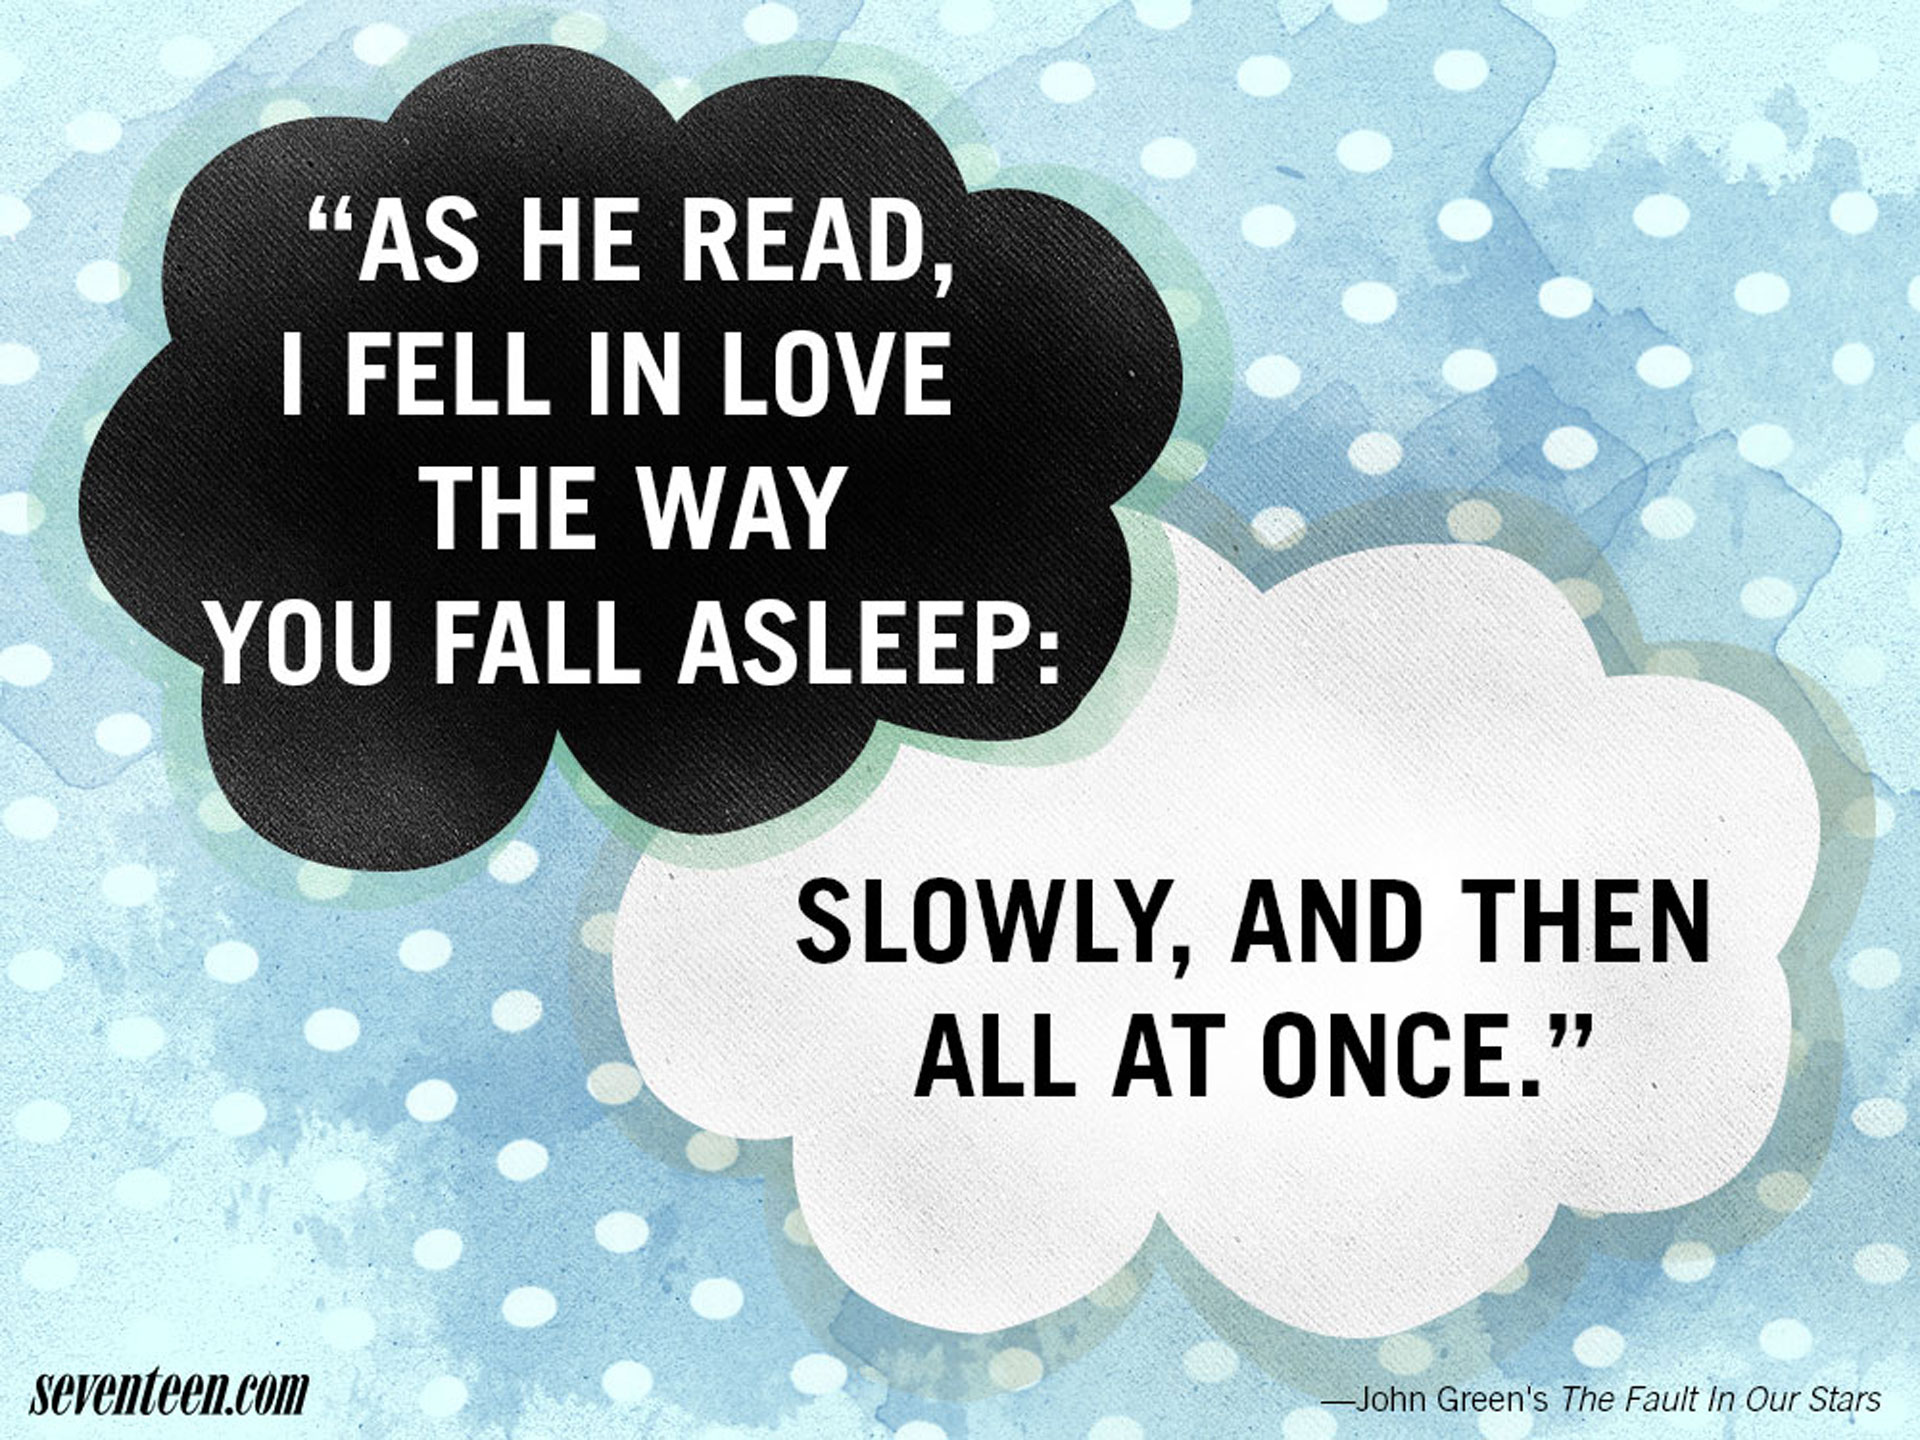 14 Best John Green Quotes - Inspiring Quotes From John ...